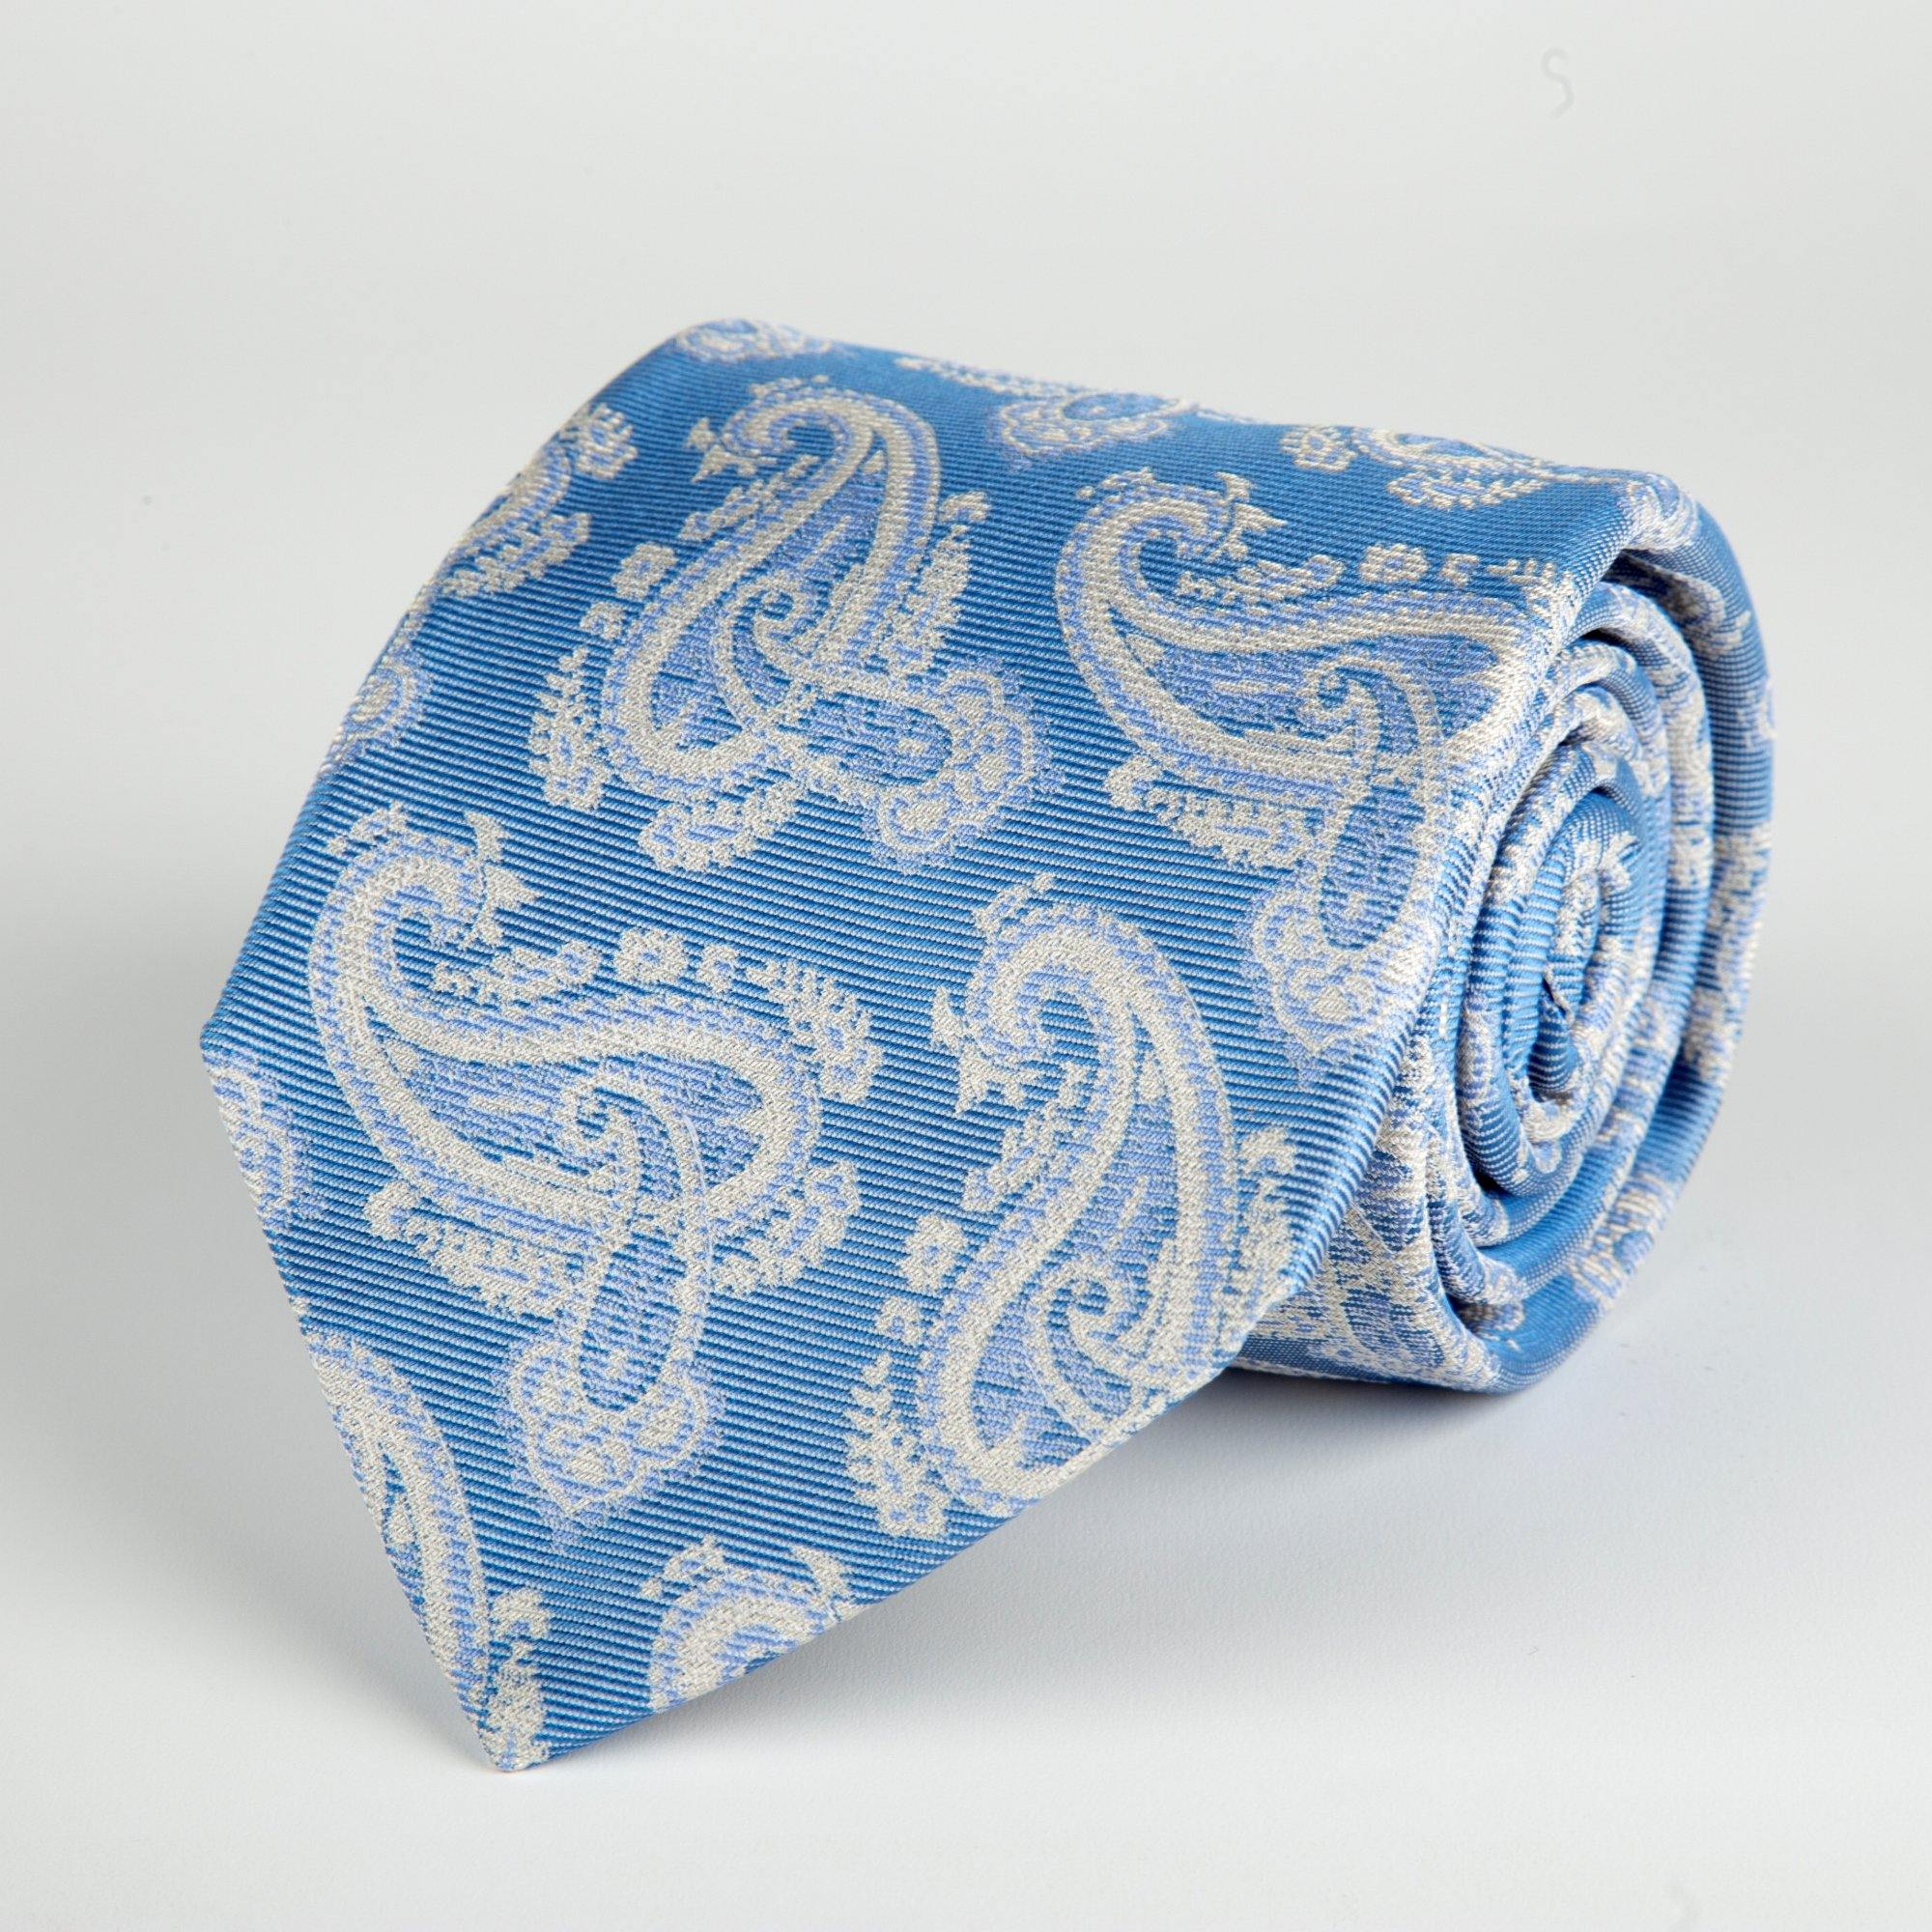 Blue Floral Paisley Woven Silk Tie Hand Finished - British Made